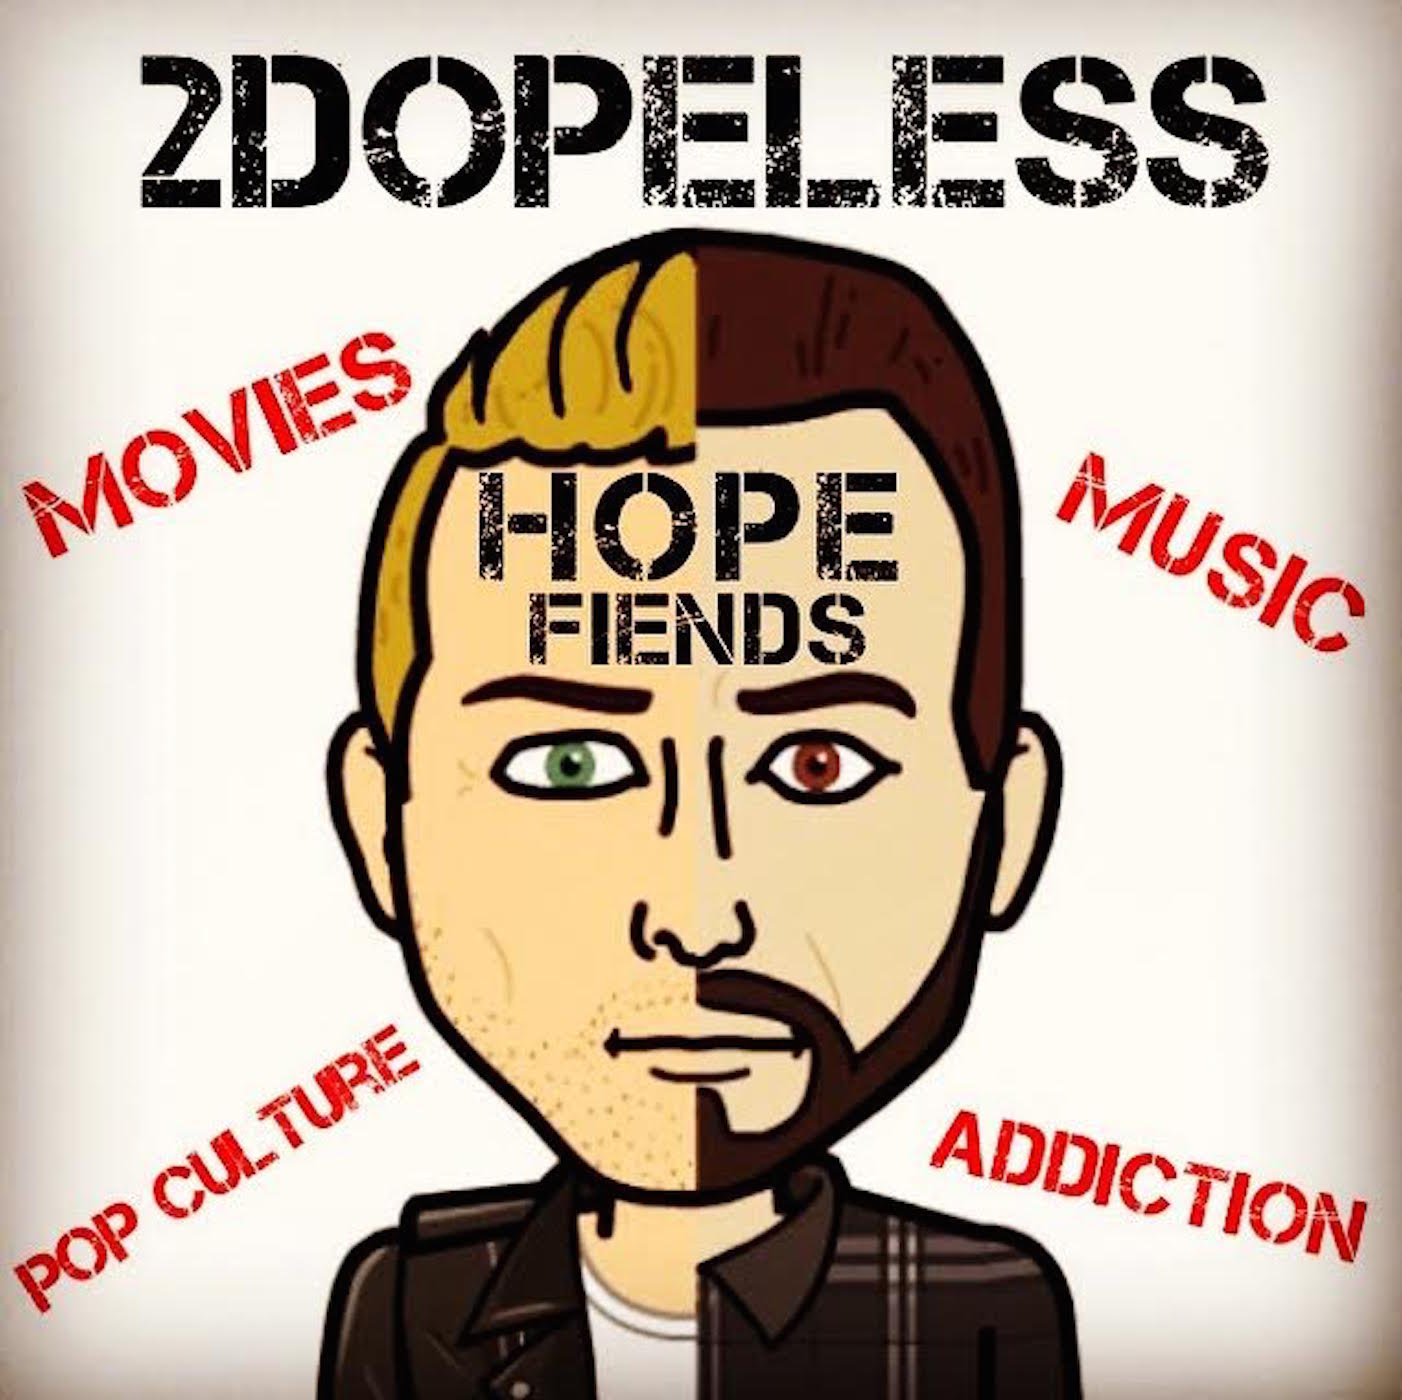 2DopeLess Hope Fiends